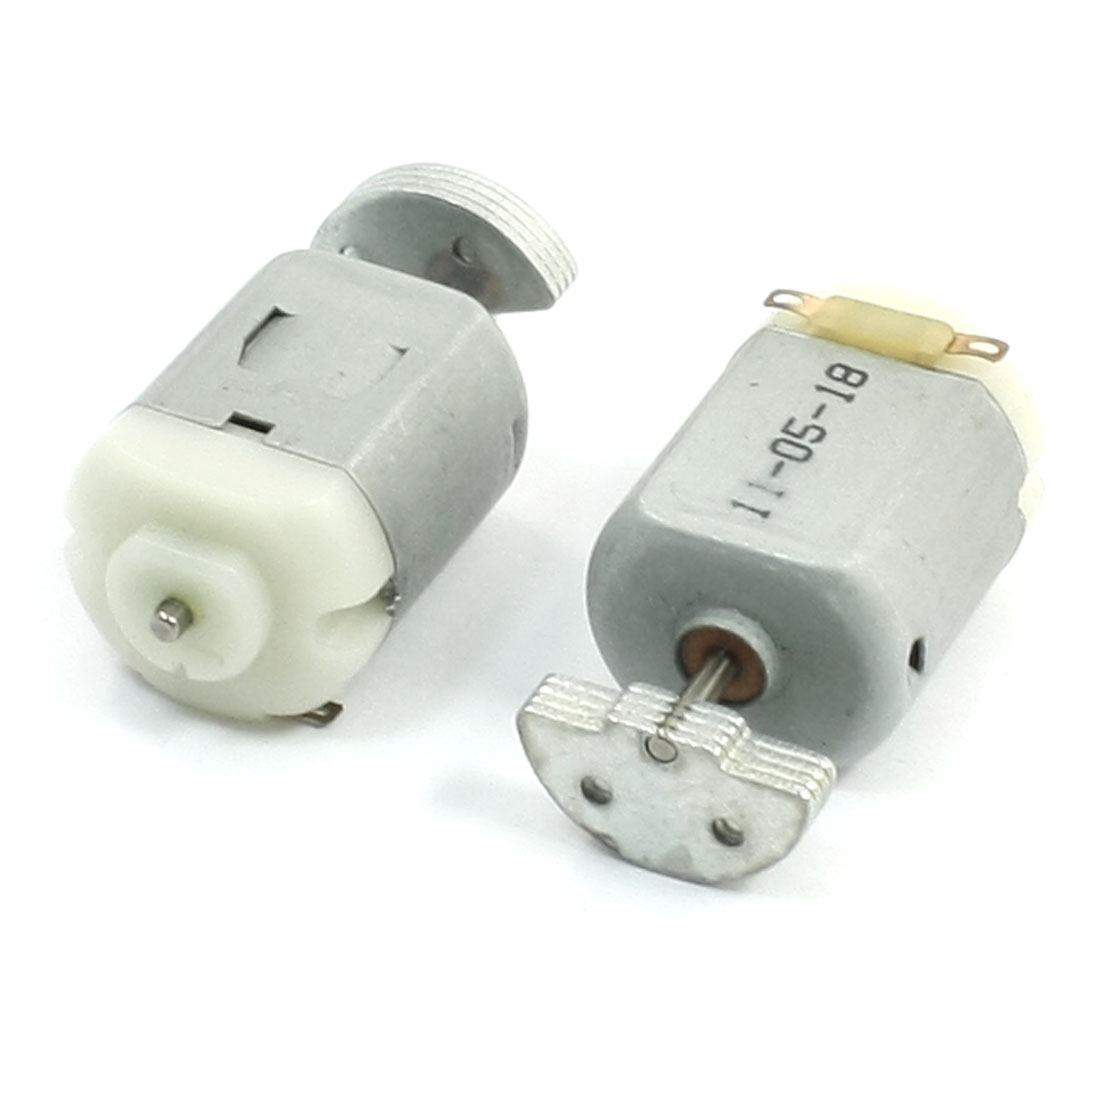 2pcs-5200RPM-3V-DC-2-Pin-Connector-High-Torque-Mini-Micro-Vibration-Motor